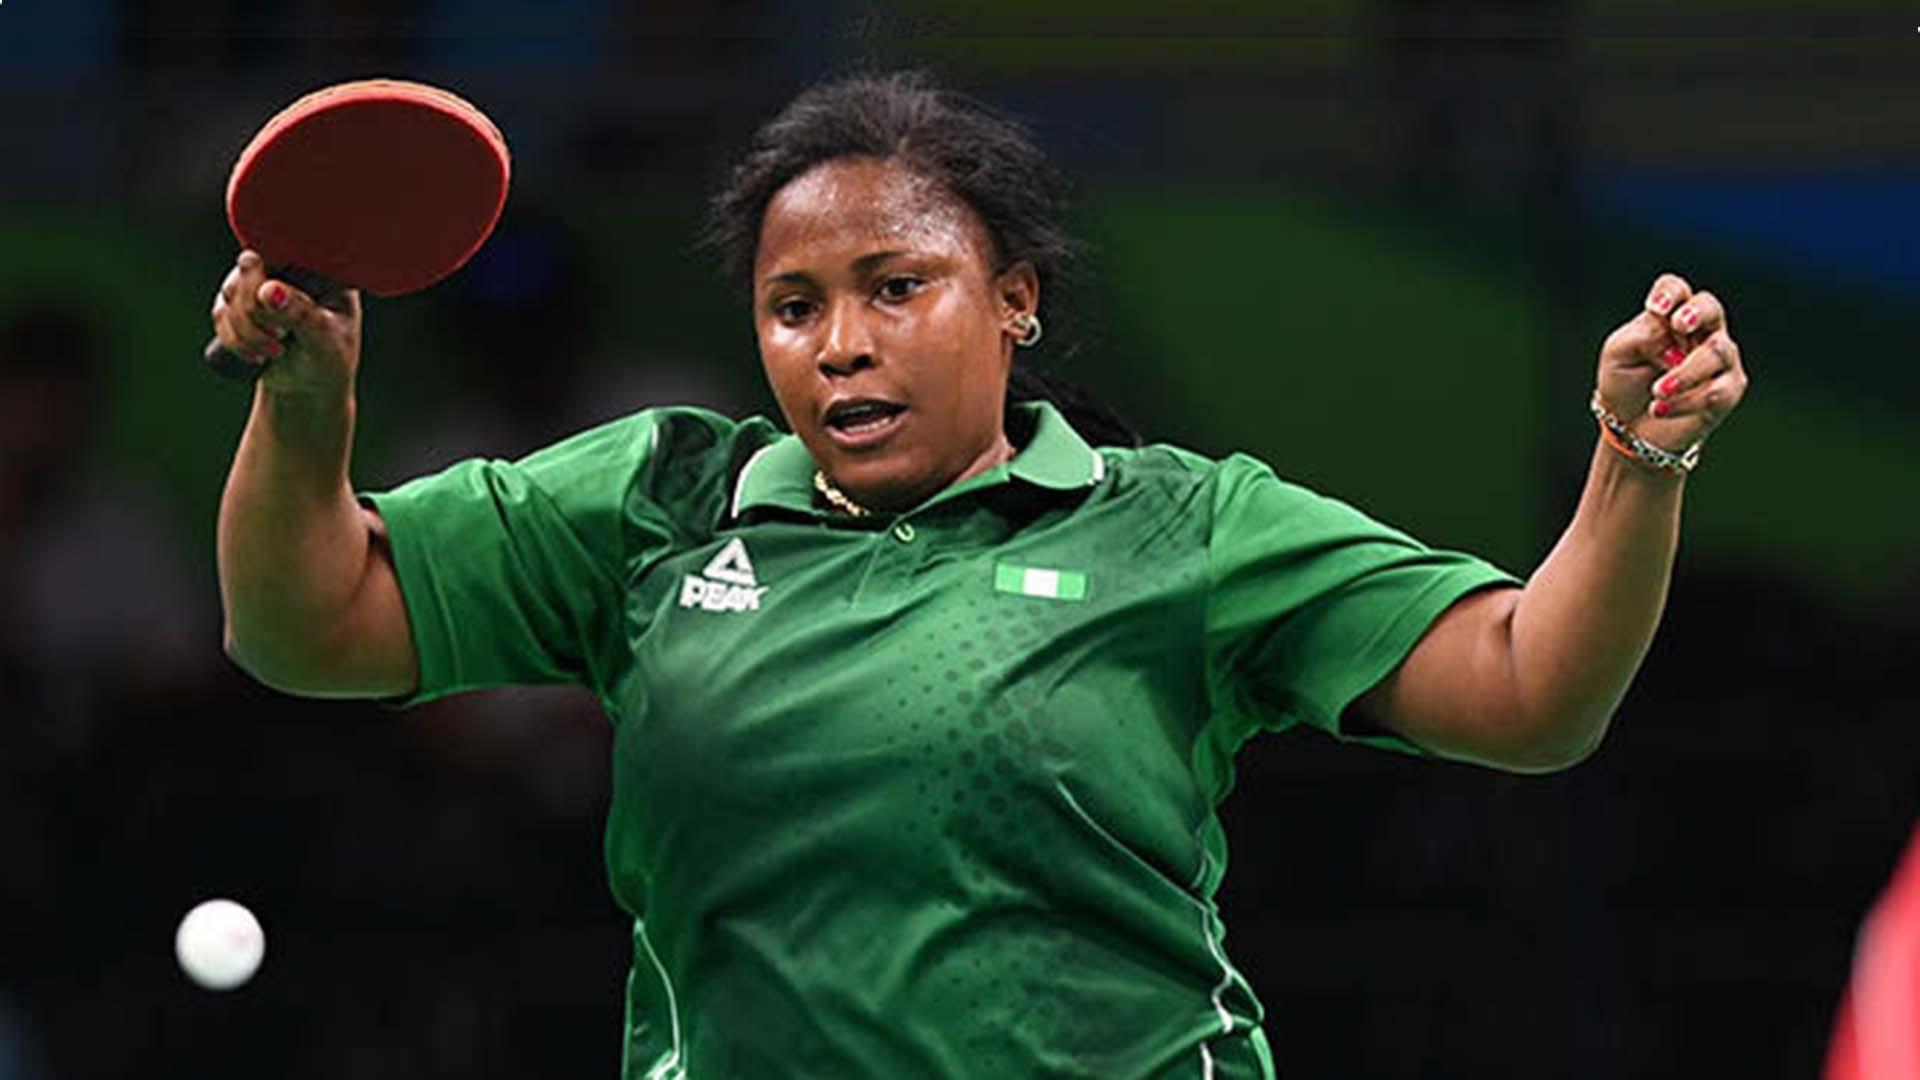 Offiong relishes Gold medal win in women Table Tennis doubles